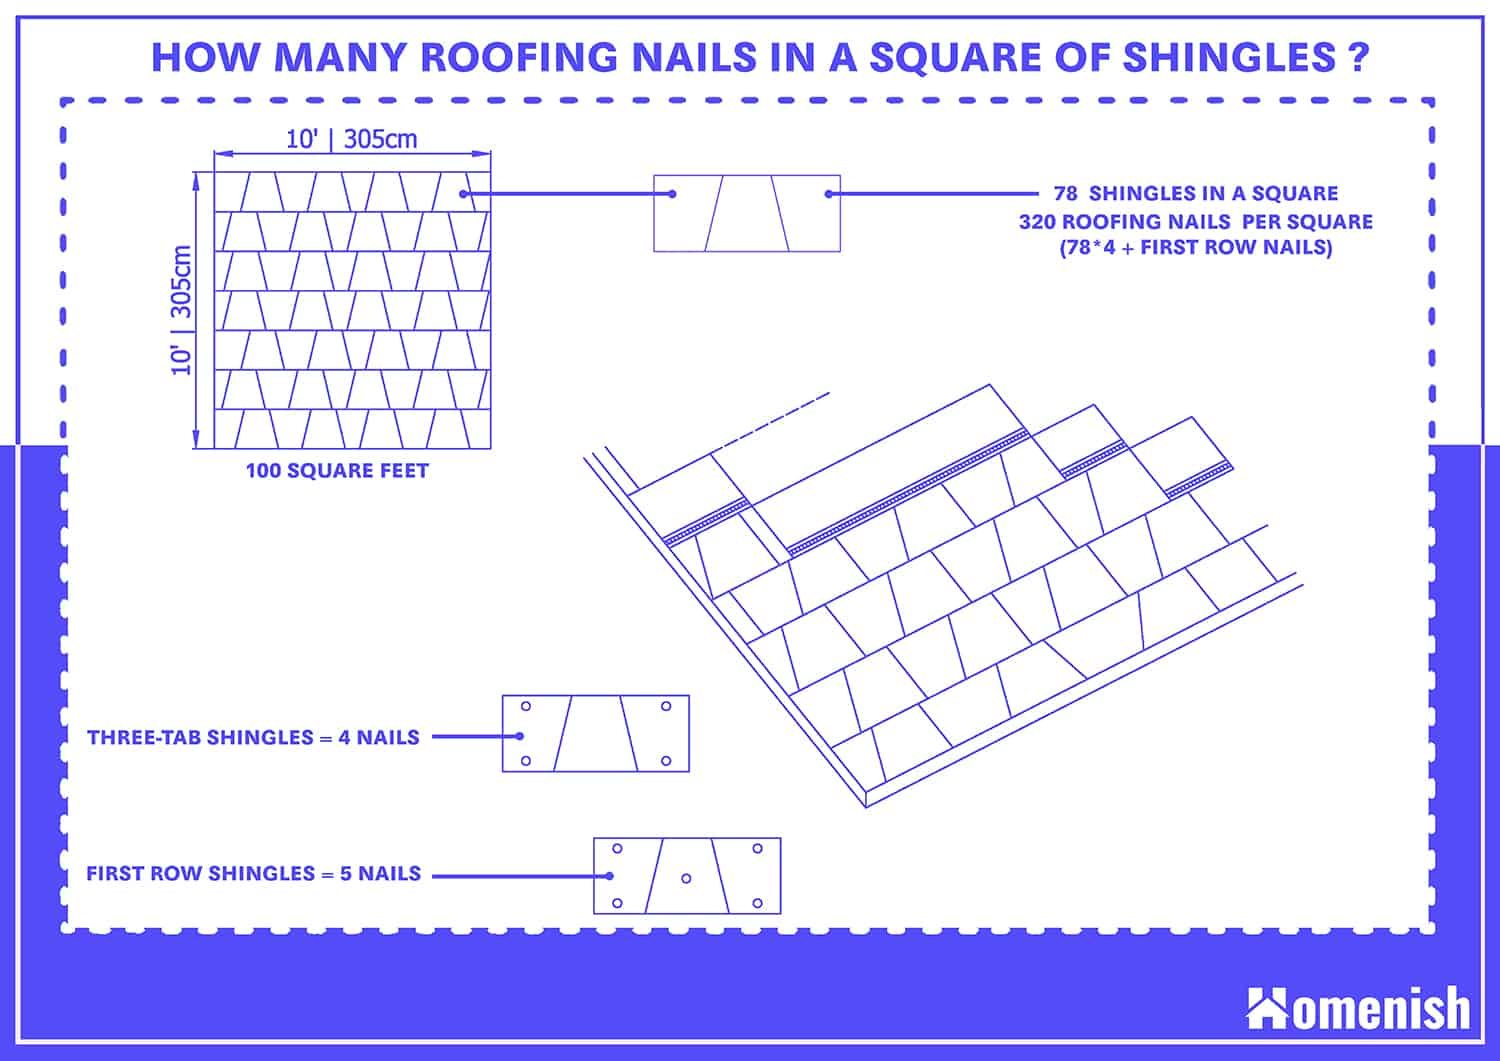 How many Roofing Nails in a Square of Shingles?